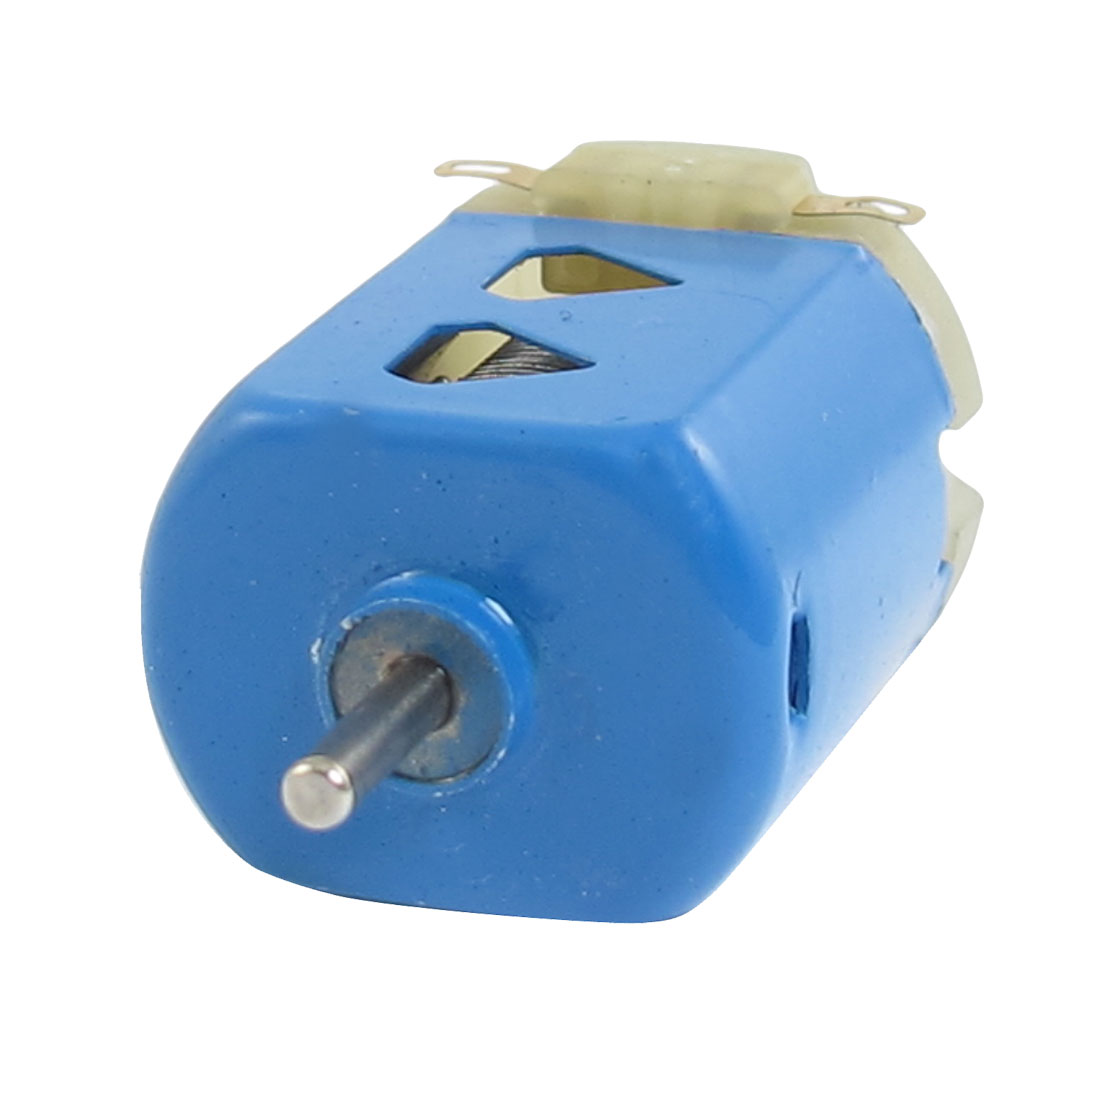 DC 1.5V 400mA 9000RPM 2mm Shaft Flat Motor 130 Blue for DIY